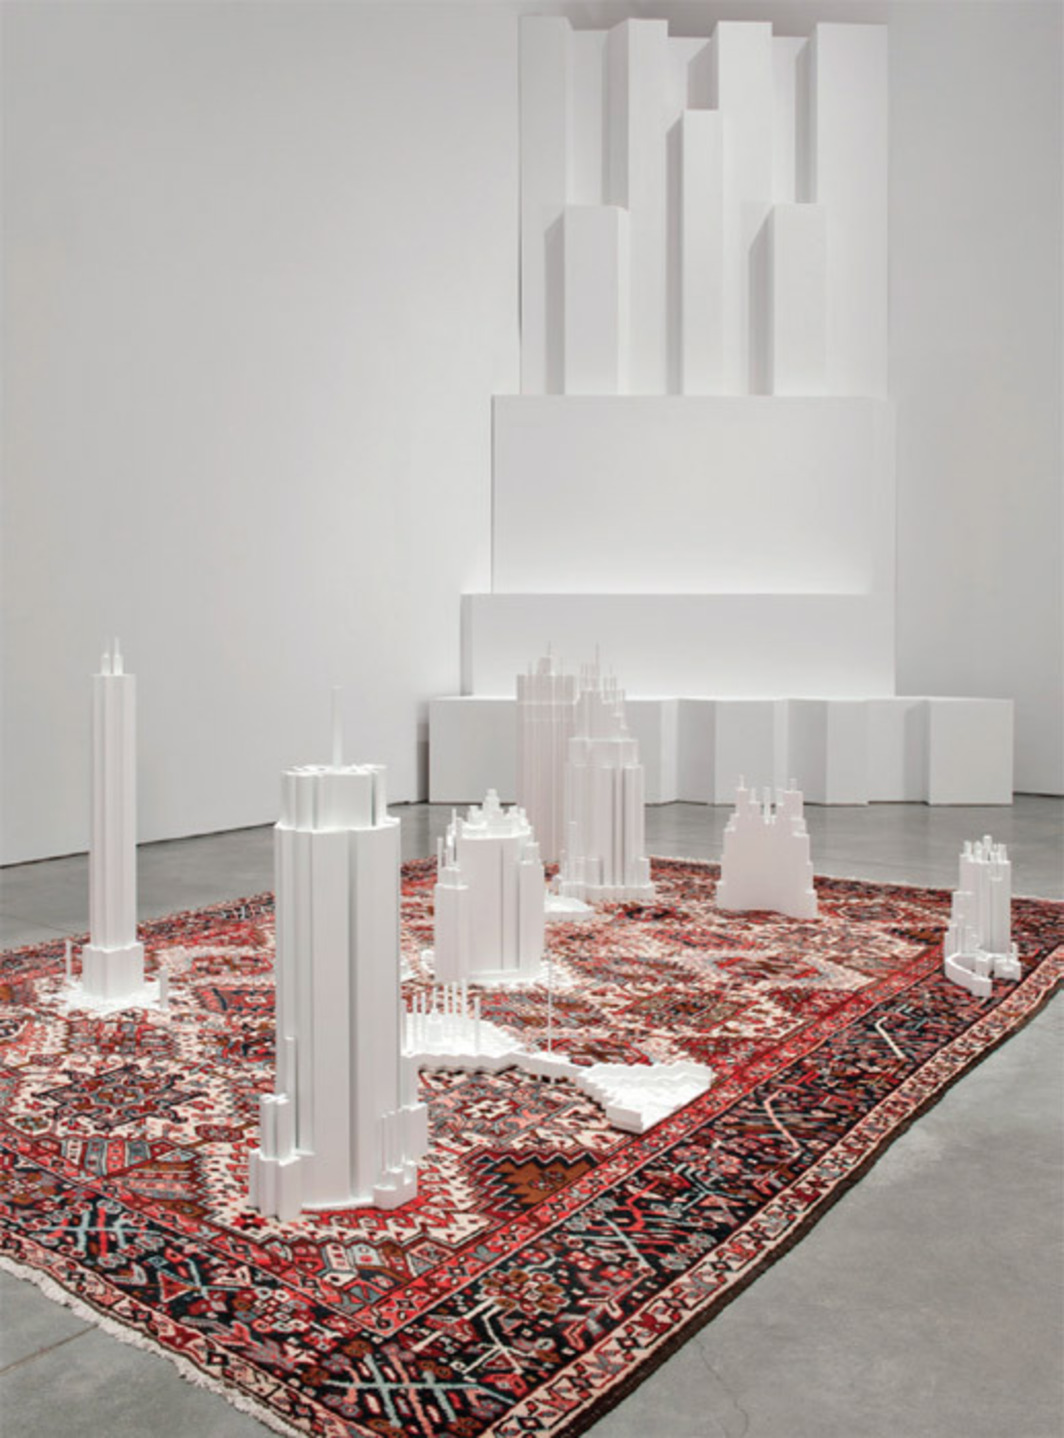 Babak Golkar, Grounds for Standing and Understanding (detail), 2012, mixed media, dimensions variable.